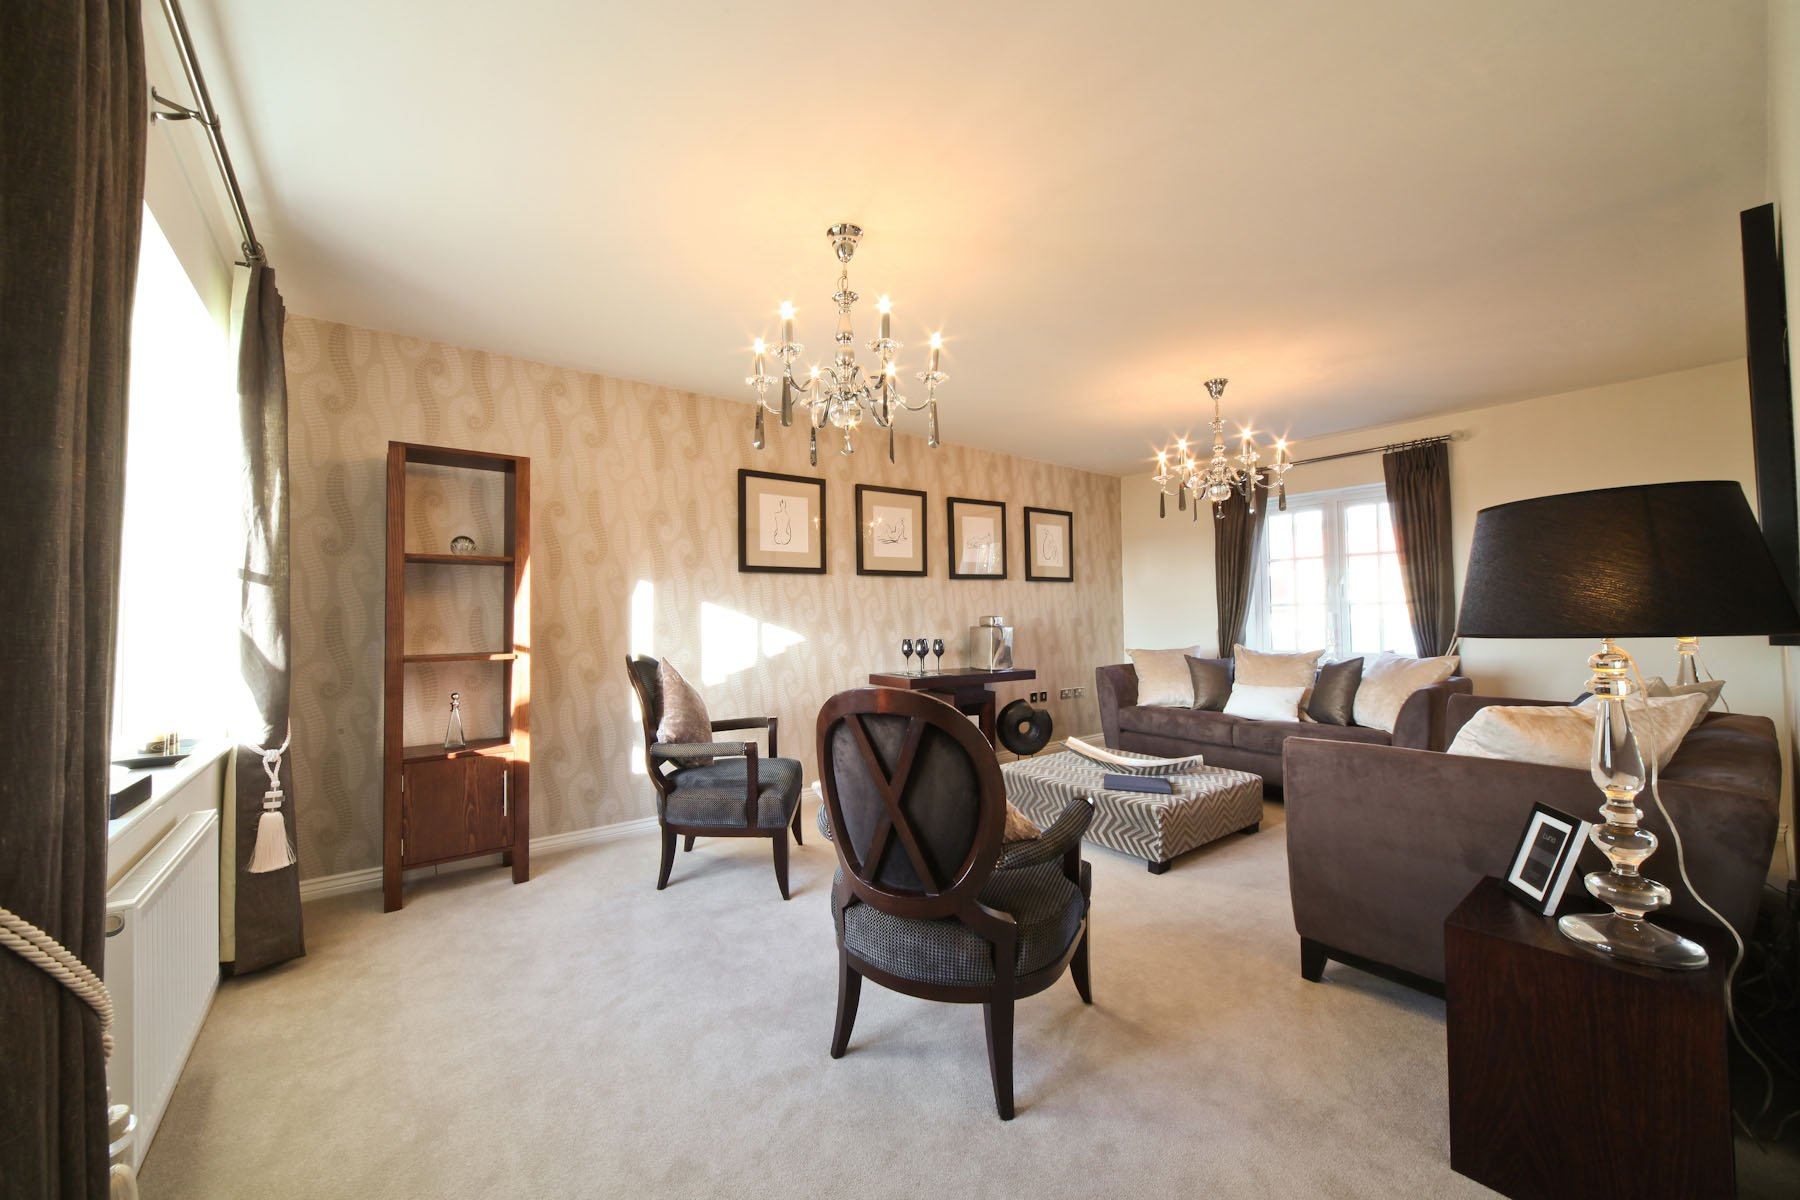 Taylor Wimpey typcical living room